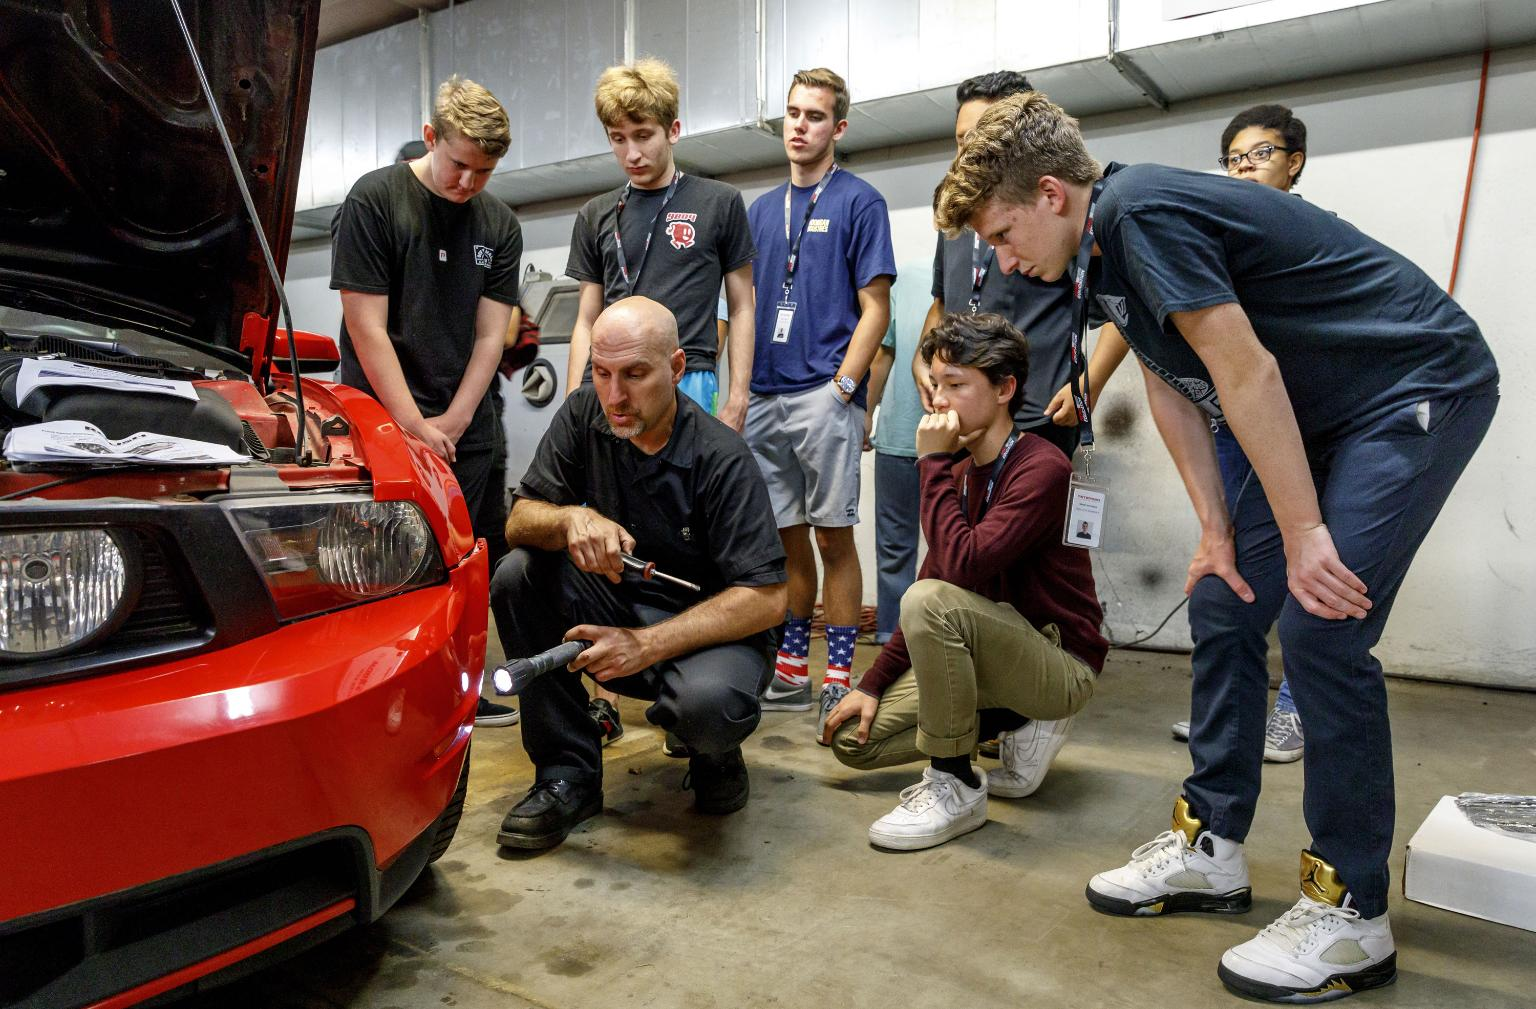 Teen Auto Workshop participants gather around to watch an in-progress repair.